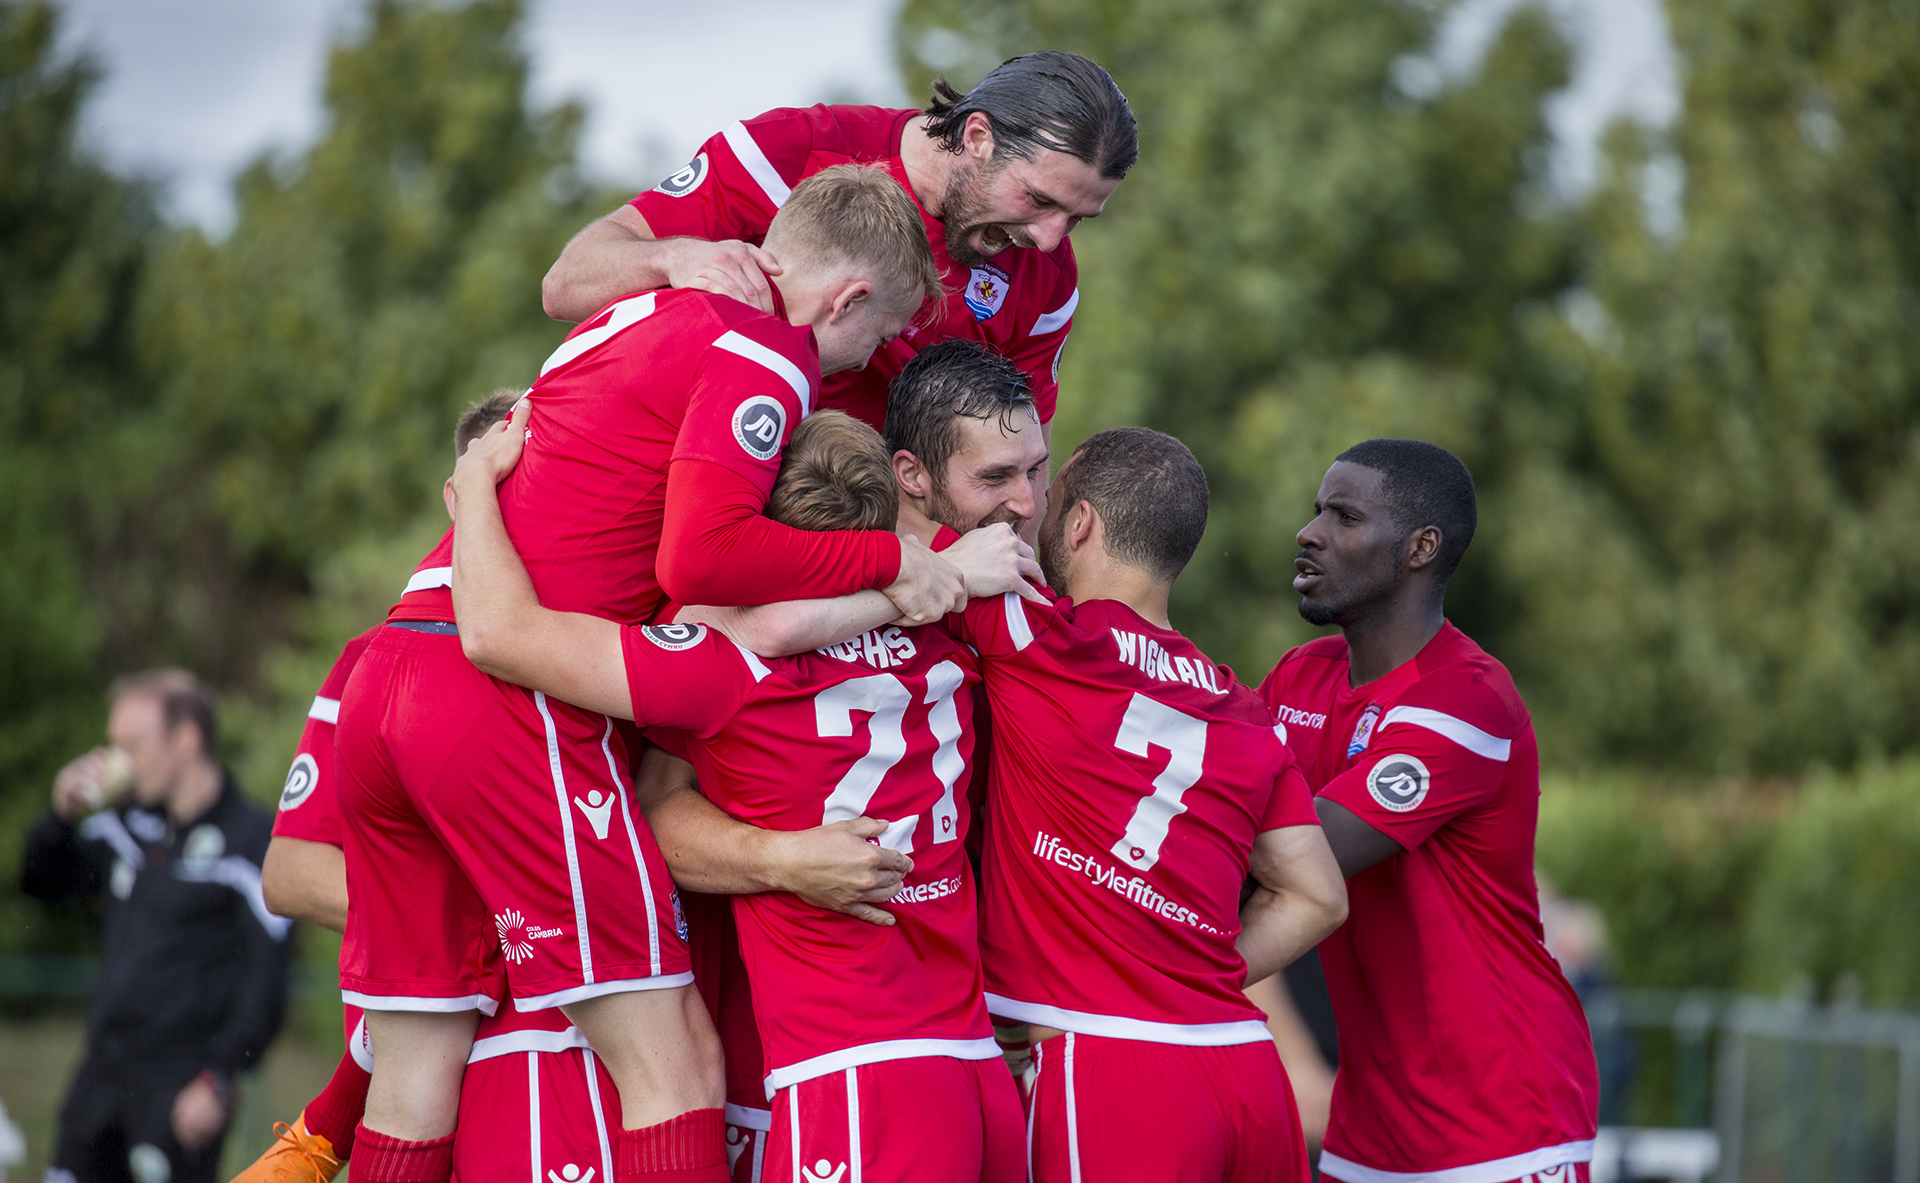 Connah's Quay Nomads players celebrate Andy Owens' strike © NCM Media